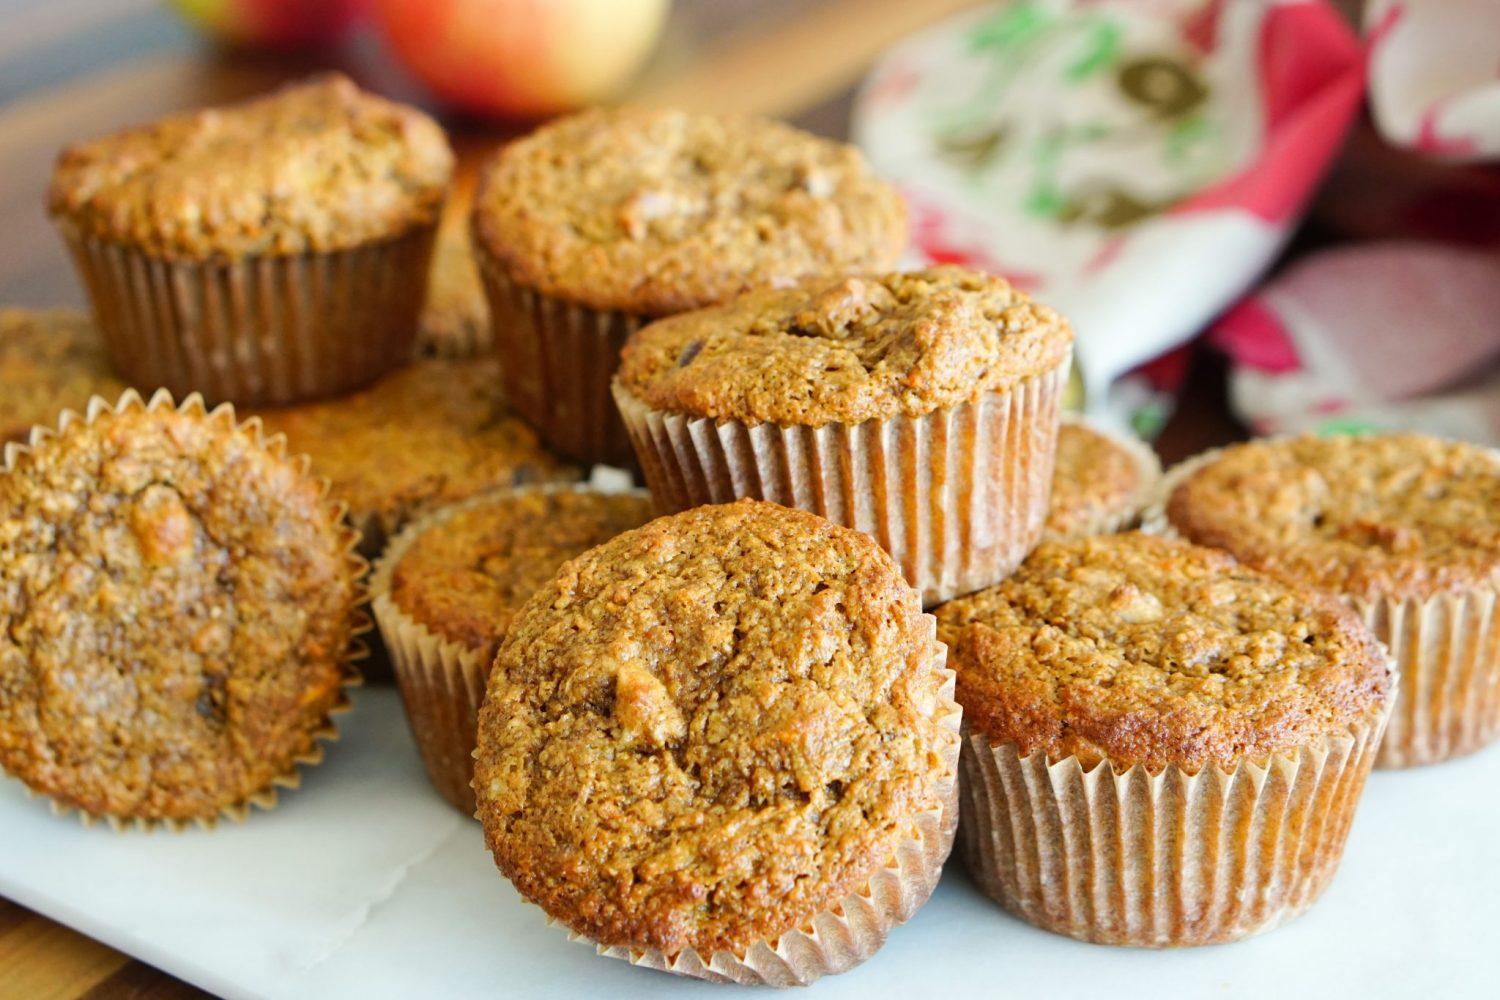 Carrot, Apple & Date Morning Muffins